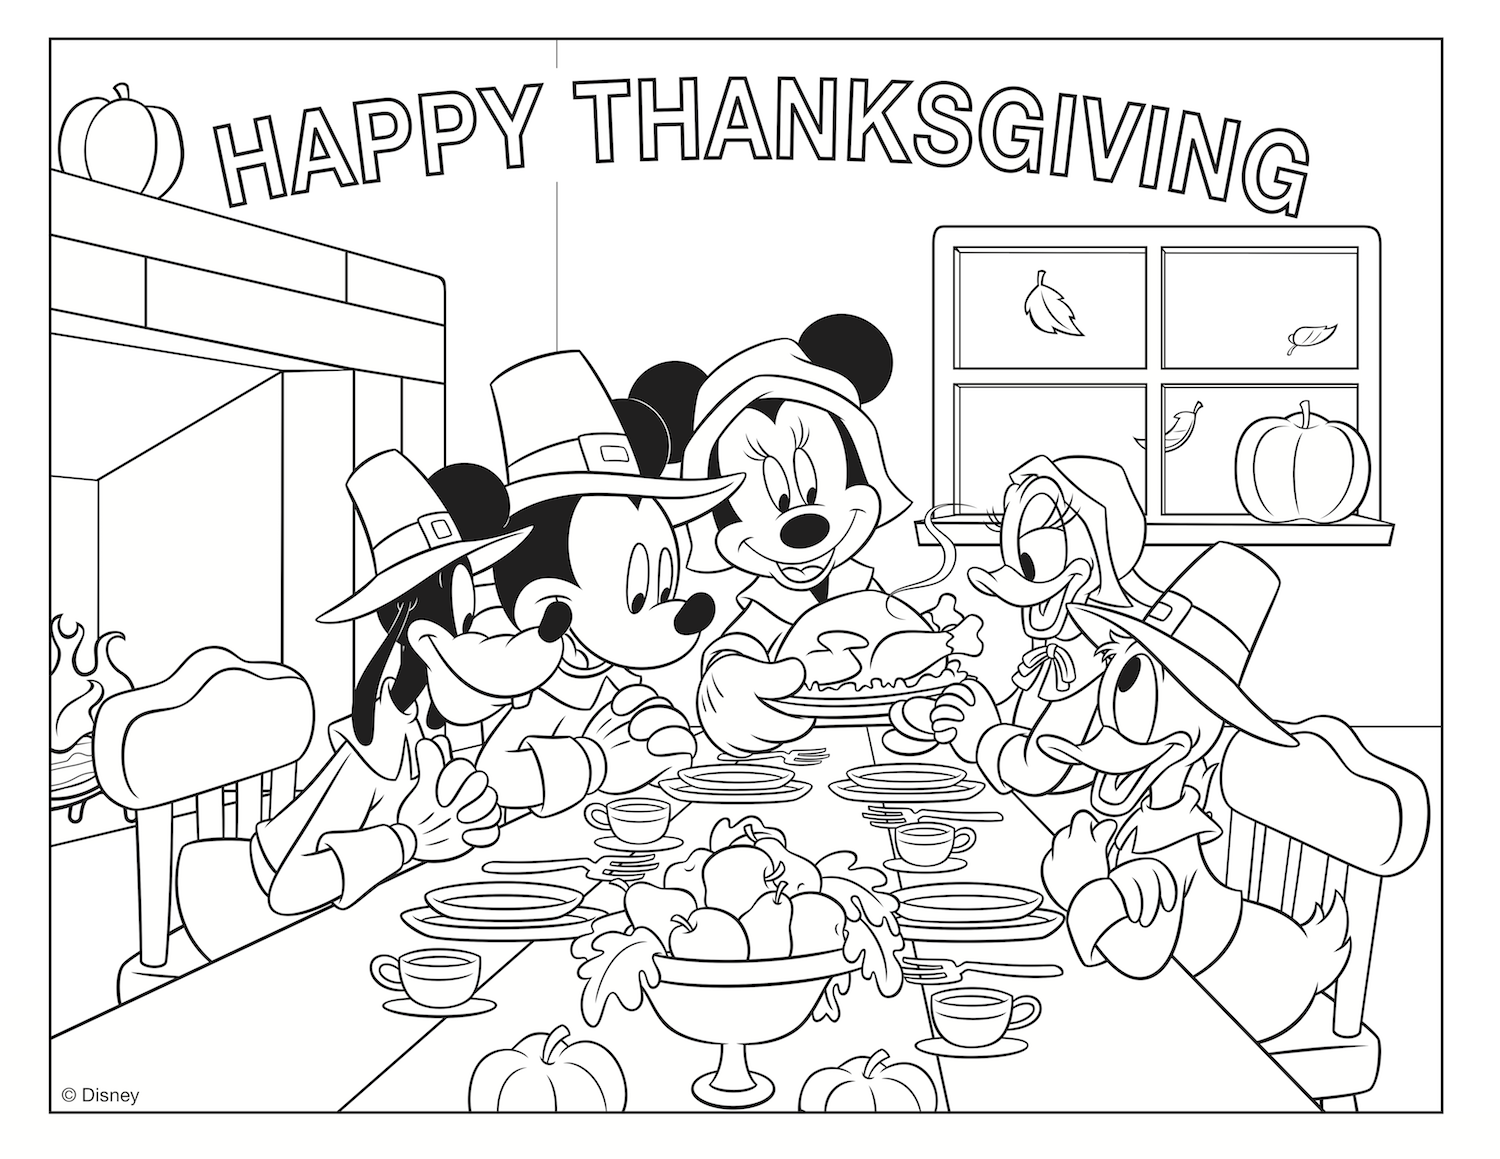 Thanksgiving Coloring Pages Thanksgiving Coloring Book Thanksgiving Coloring Sheets Thanksgiving Pictures To Color